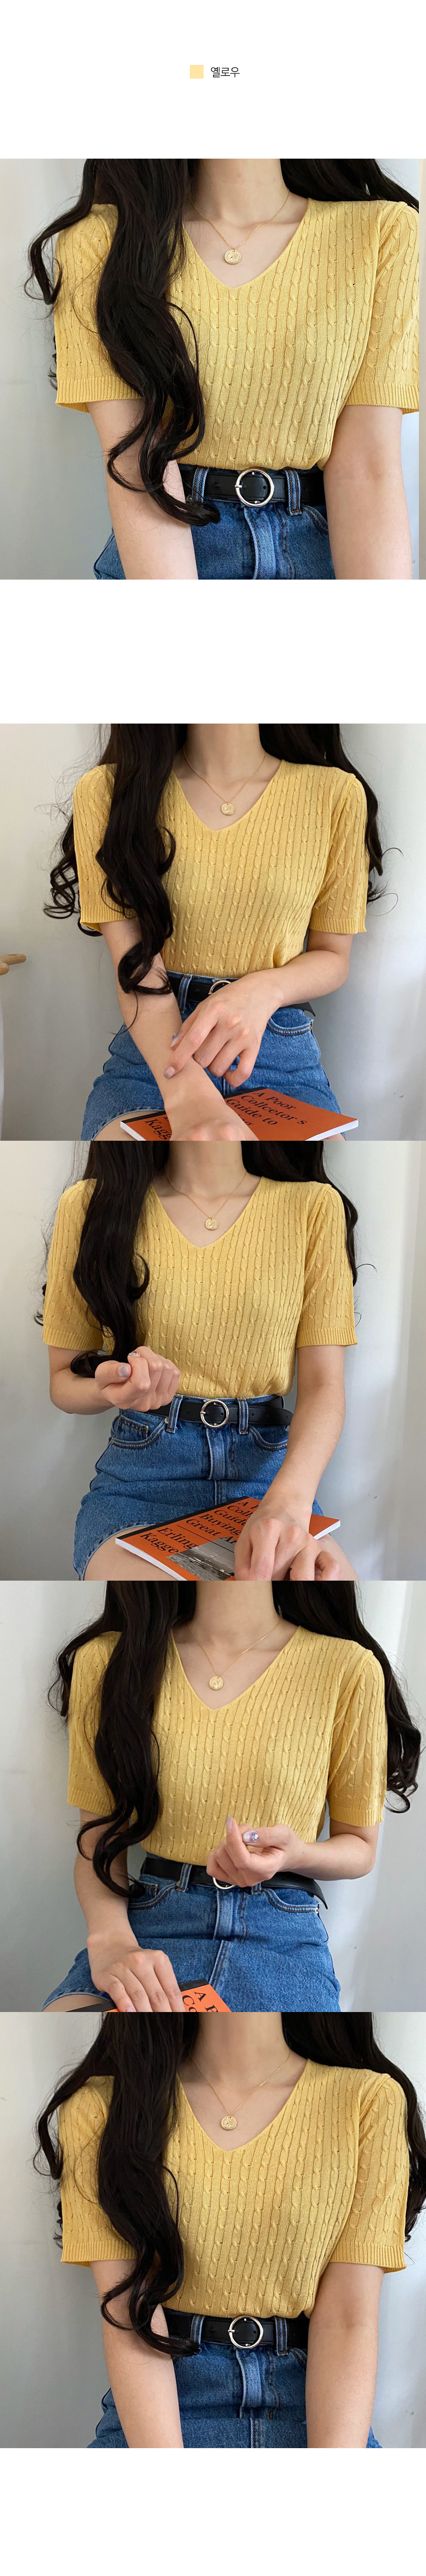 Green Bean Cable V Neck Short Sleeve Knit